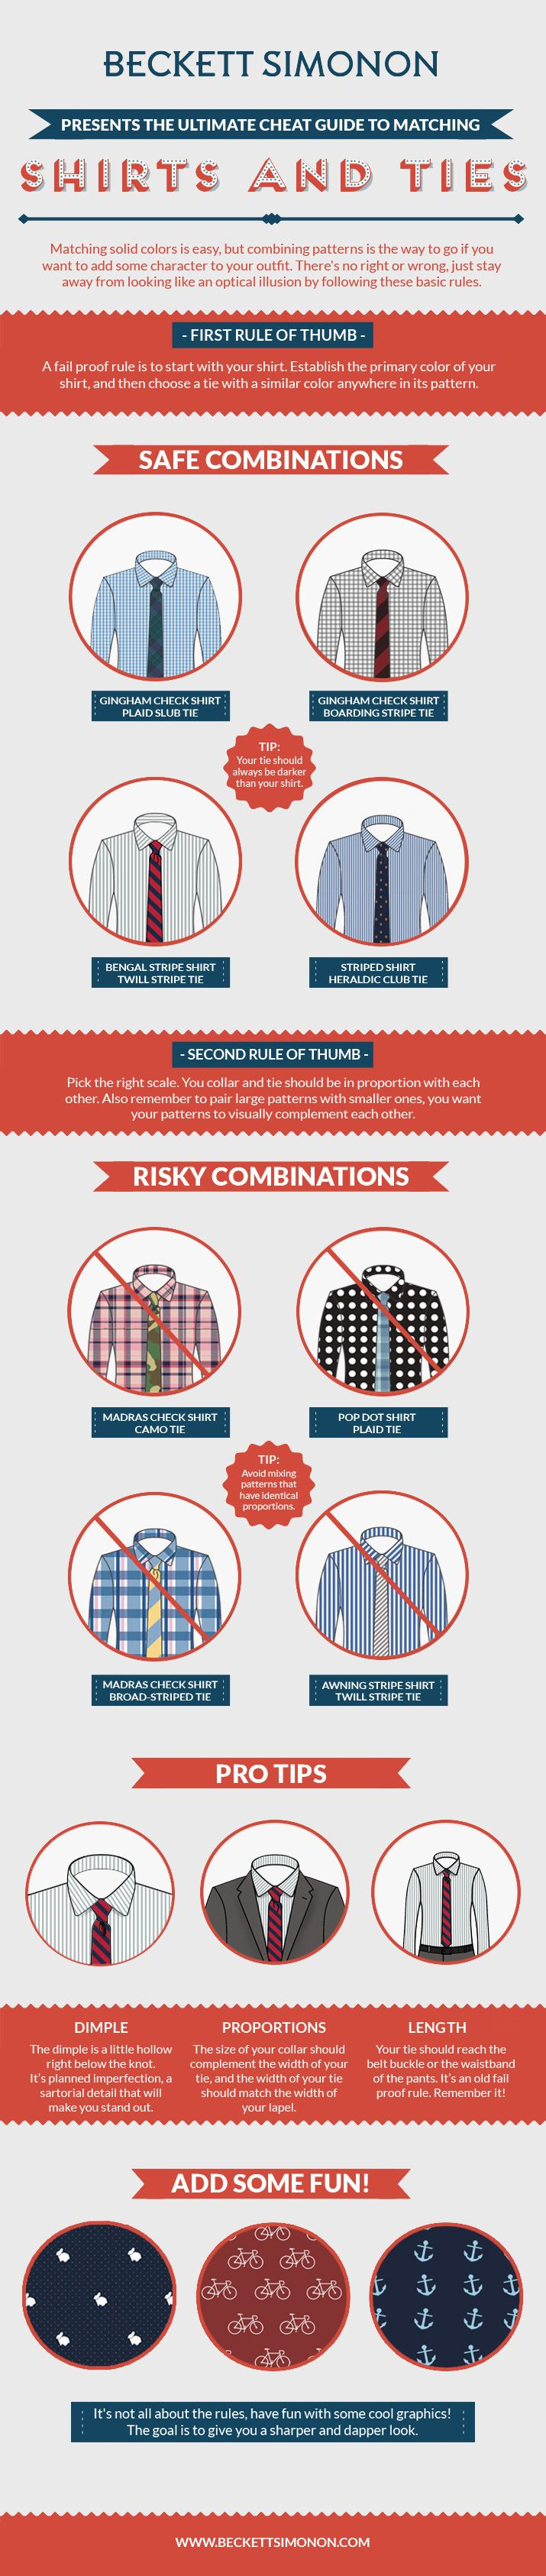 Ultimate cheat guide to matching shirts and ties